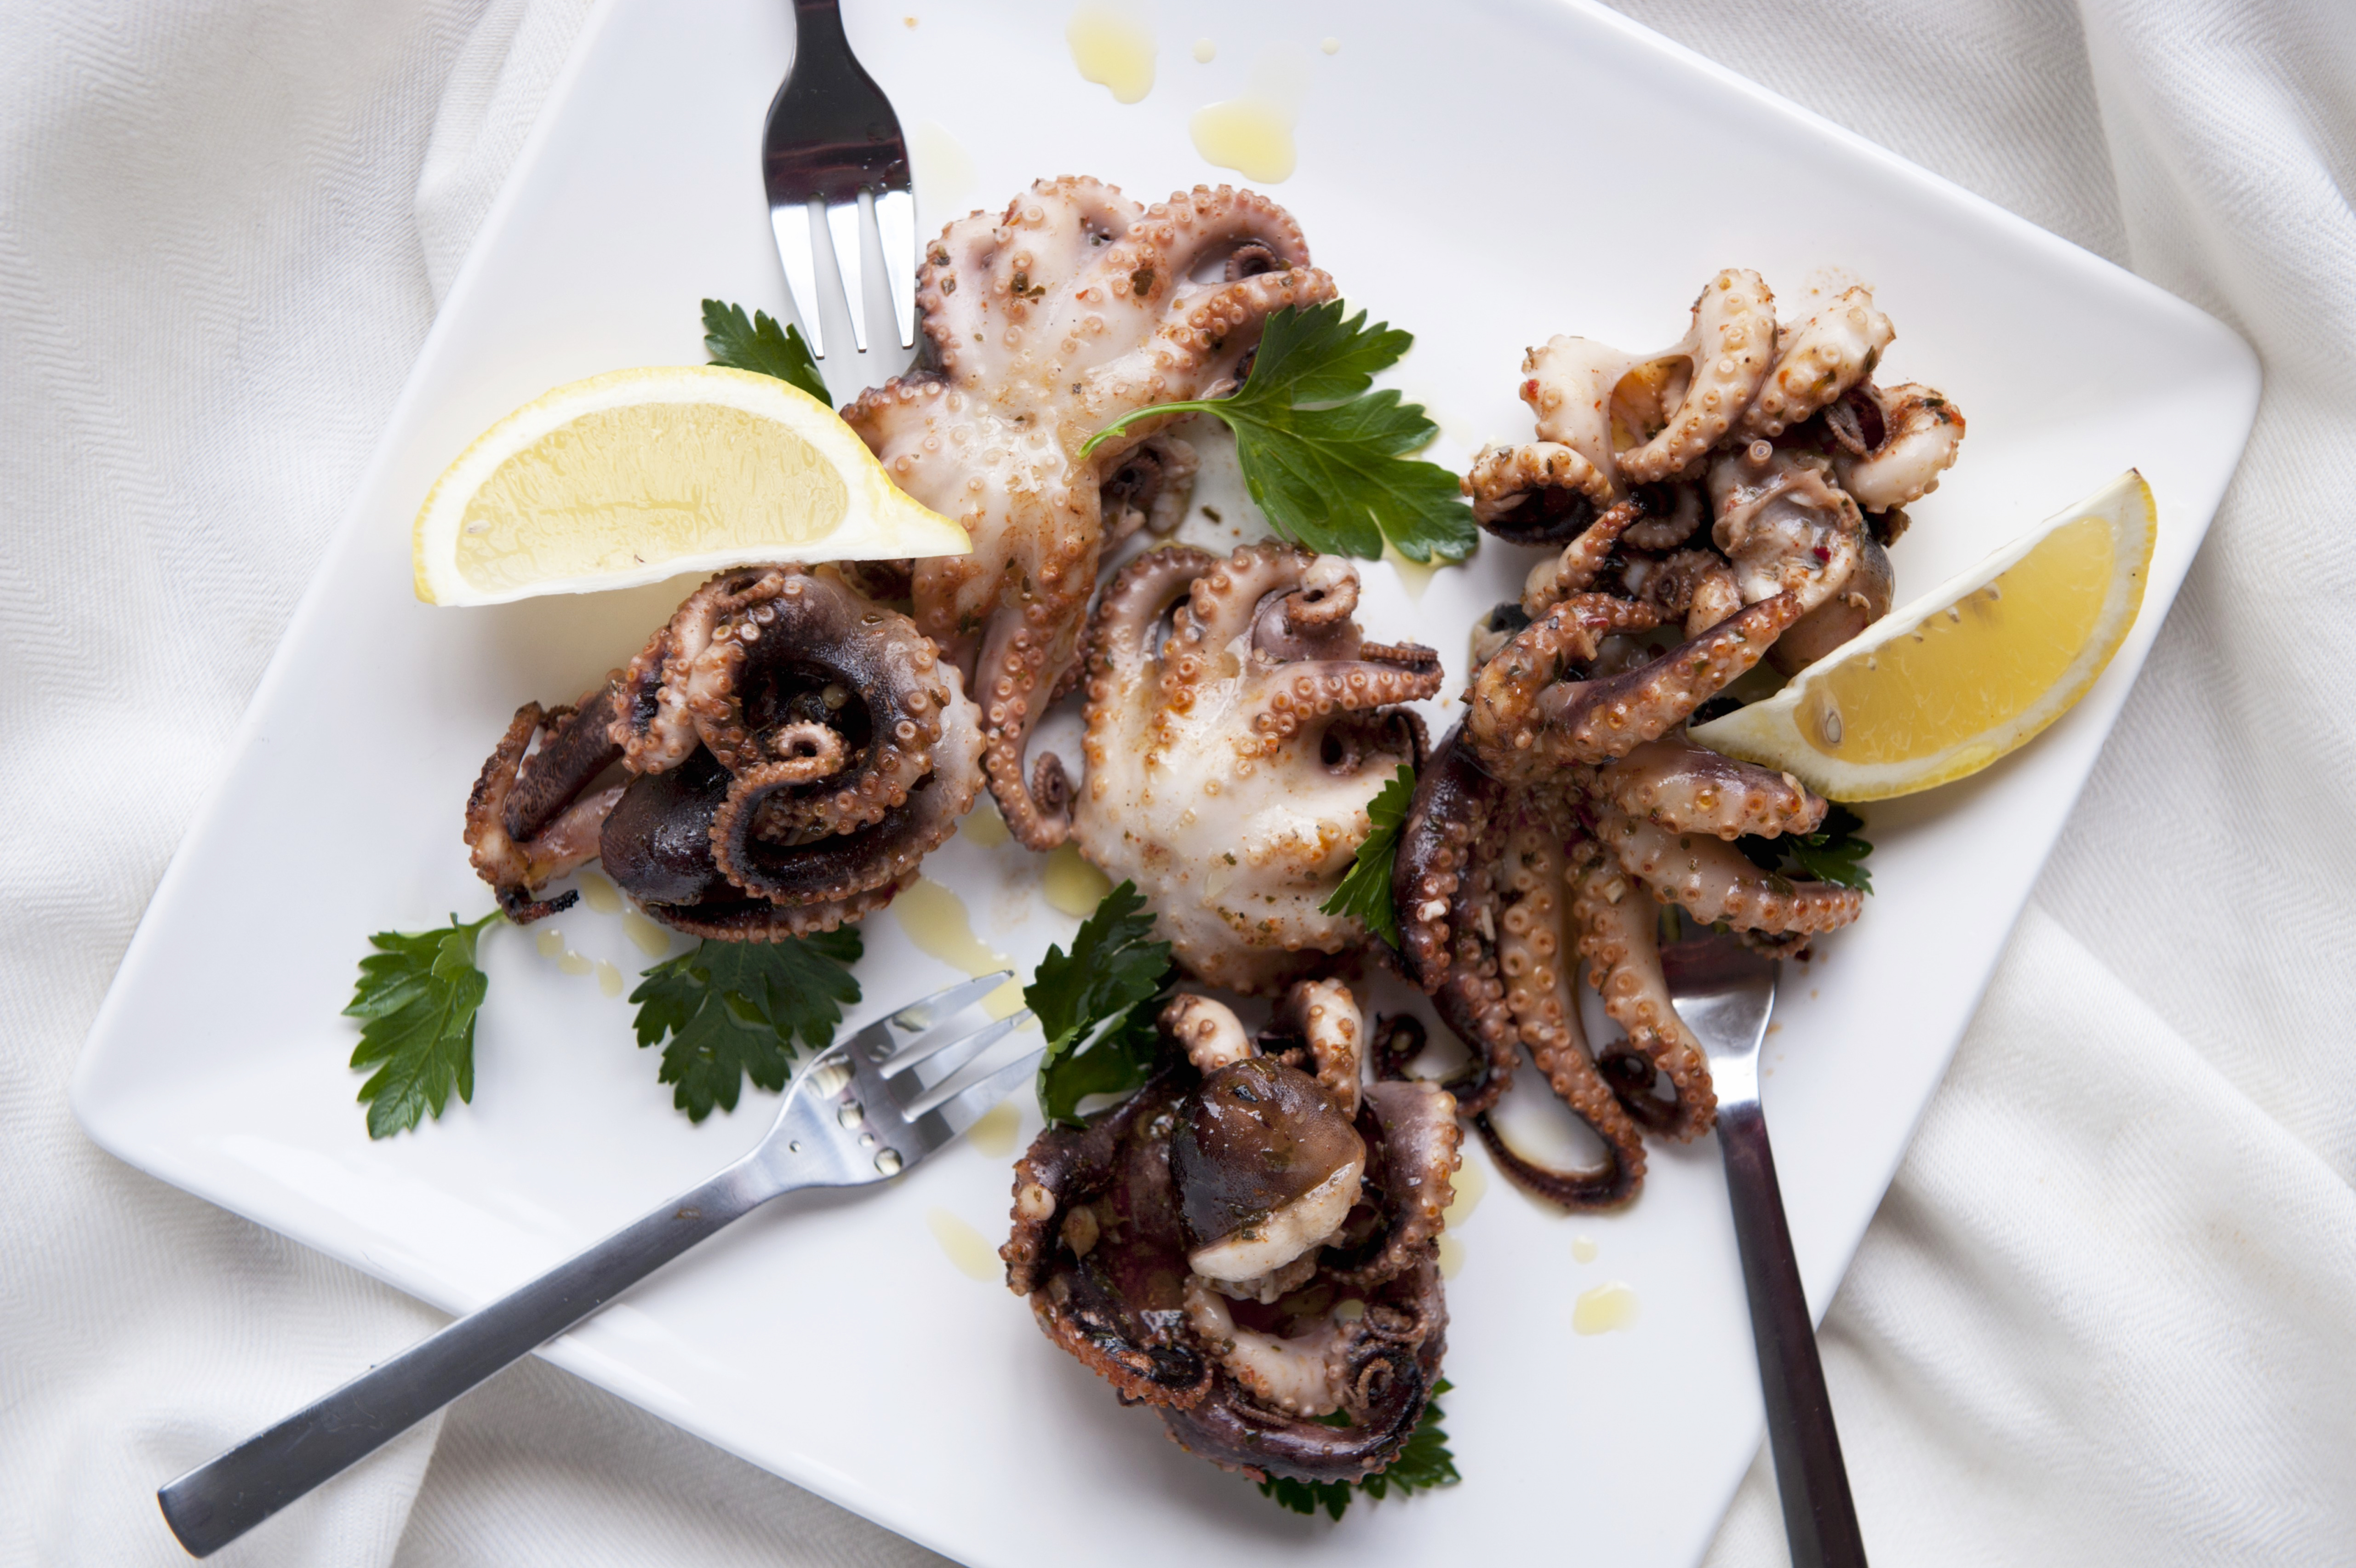 Why You Should Say Yes to Eating That Baby Octopus Thing